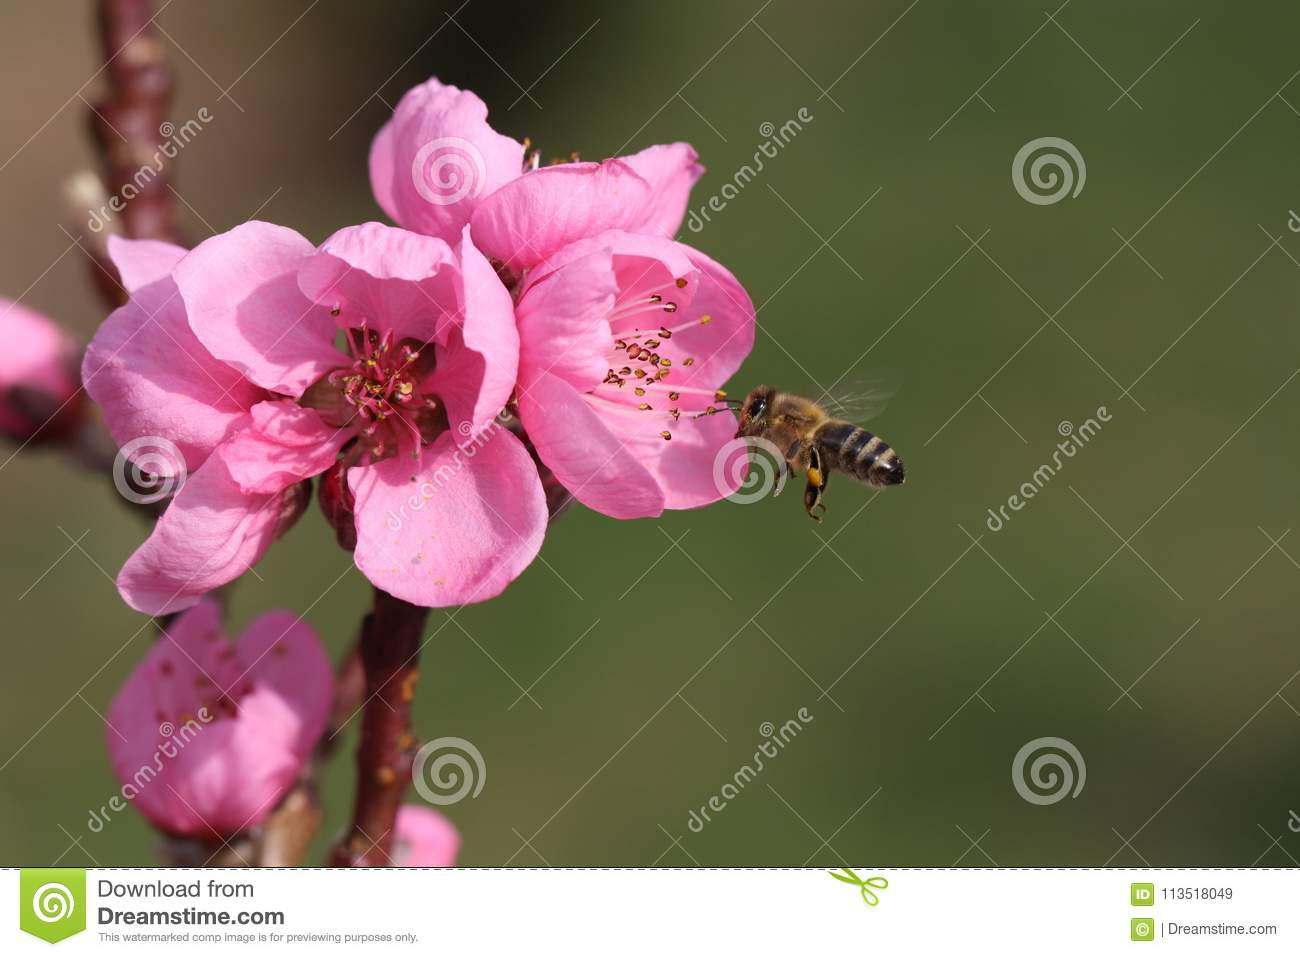 Pink blossom from a fruit tree with flying bee